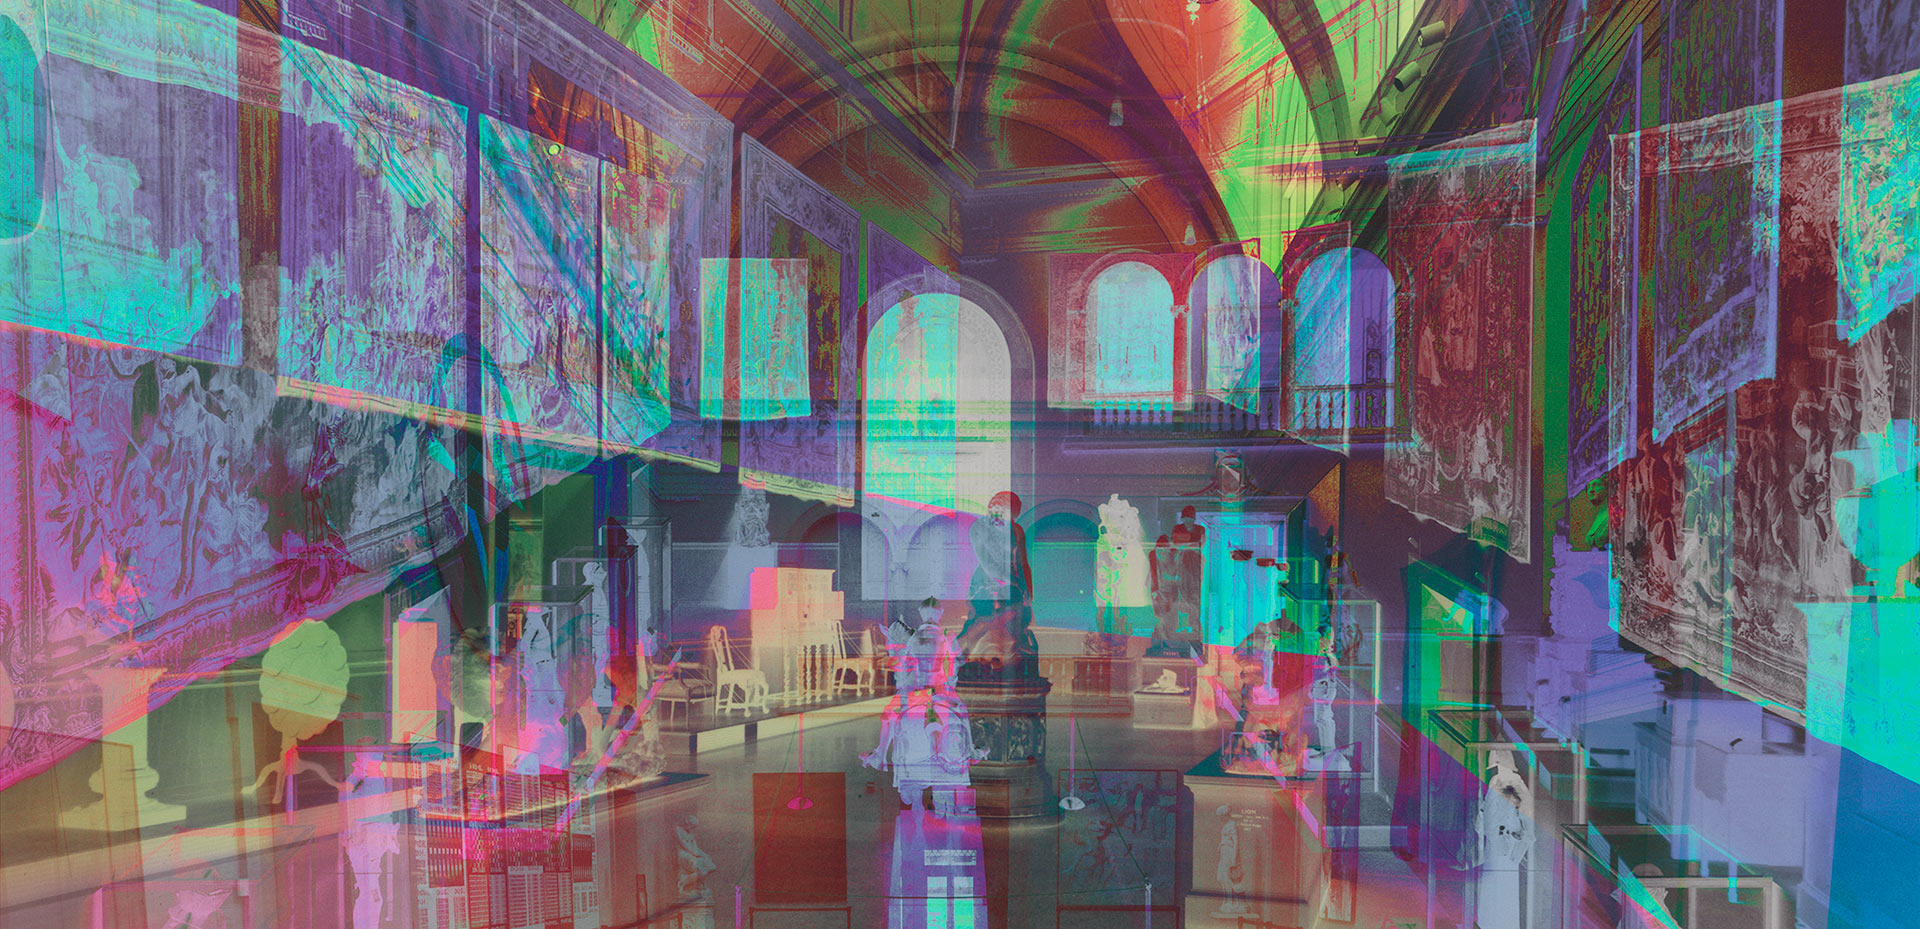 A detail of a photo by James Welling, titled Morgan Great Hall, dated 2015.